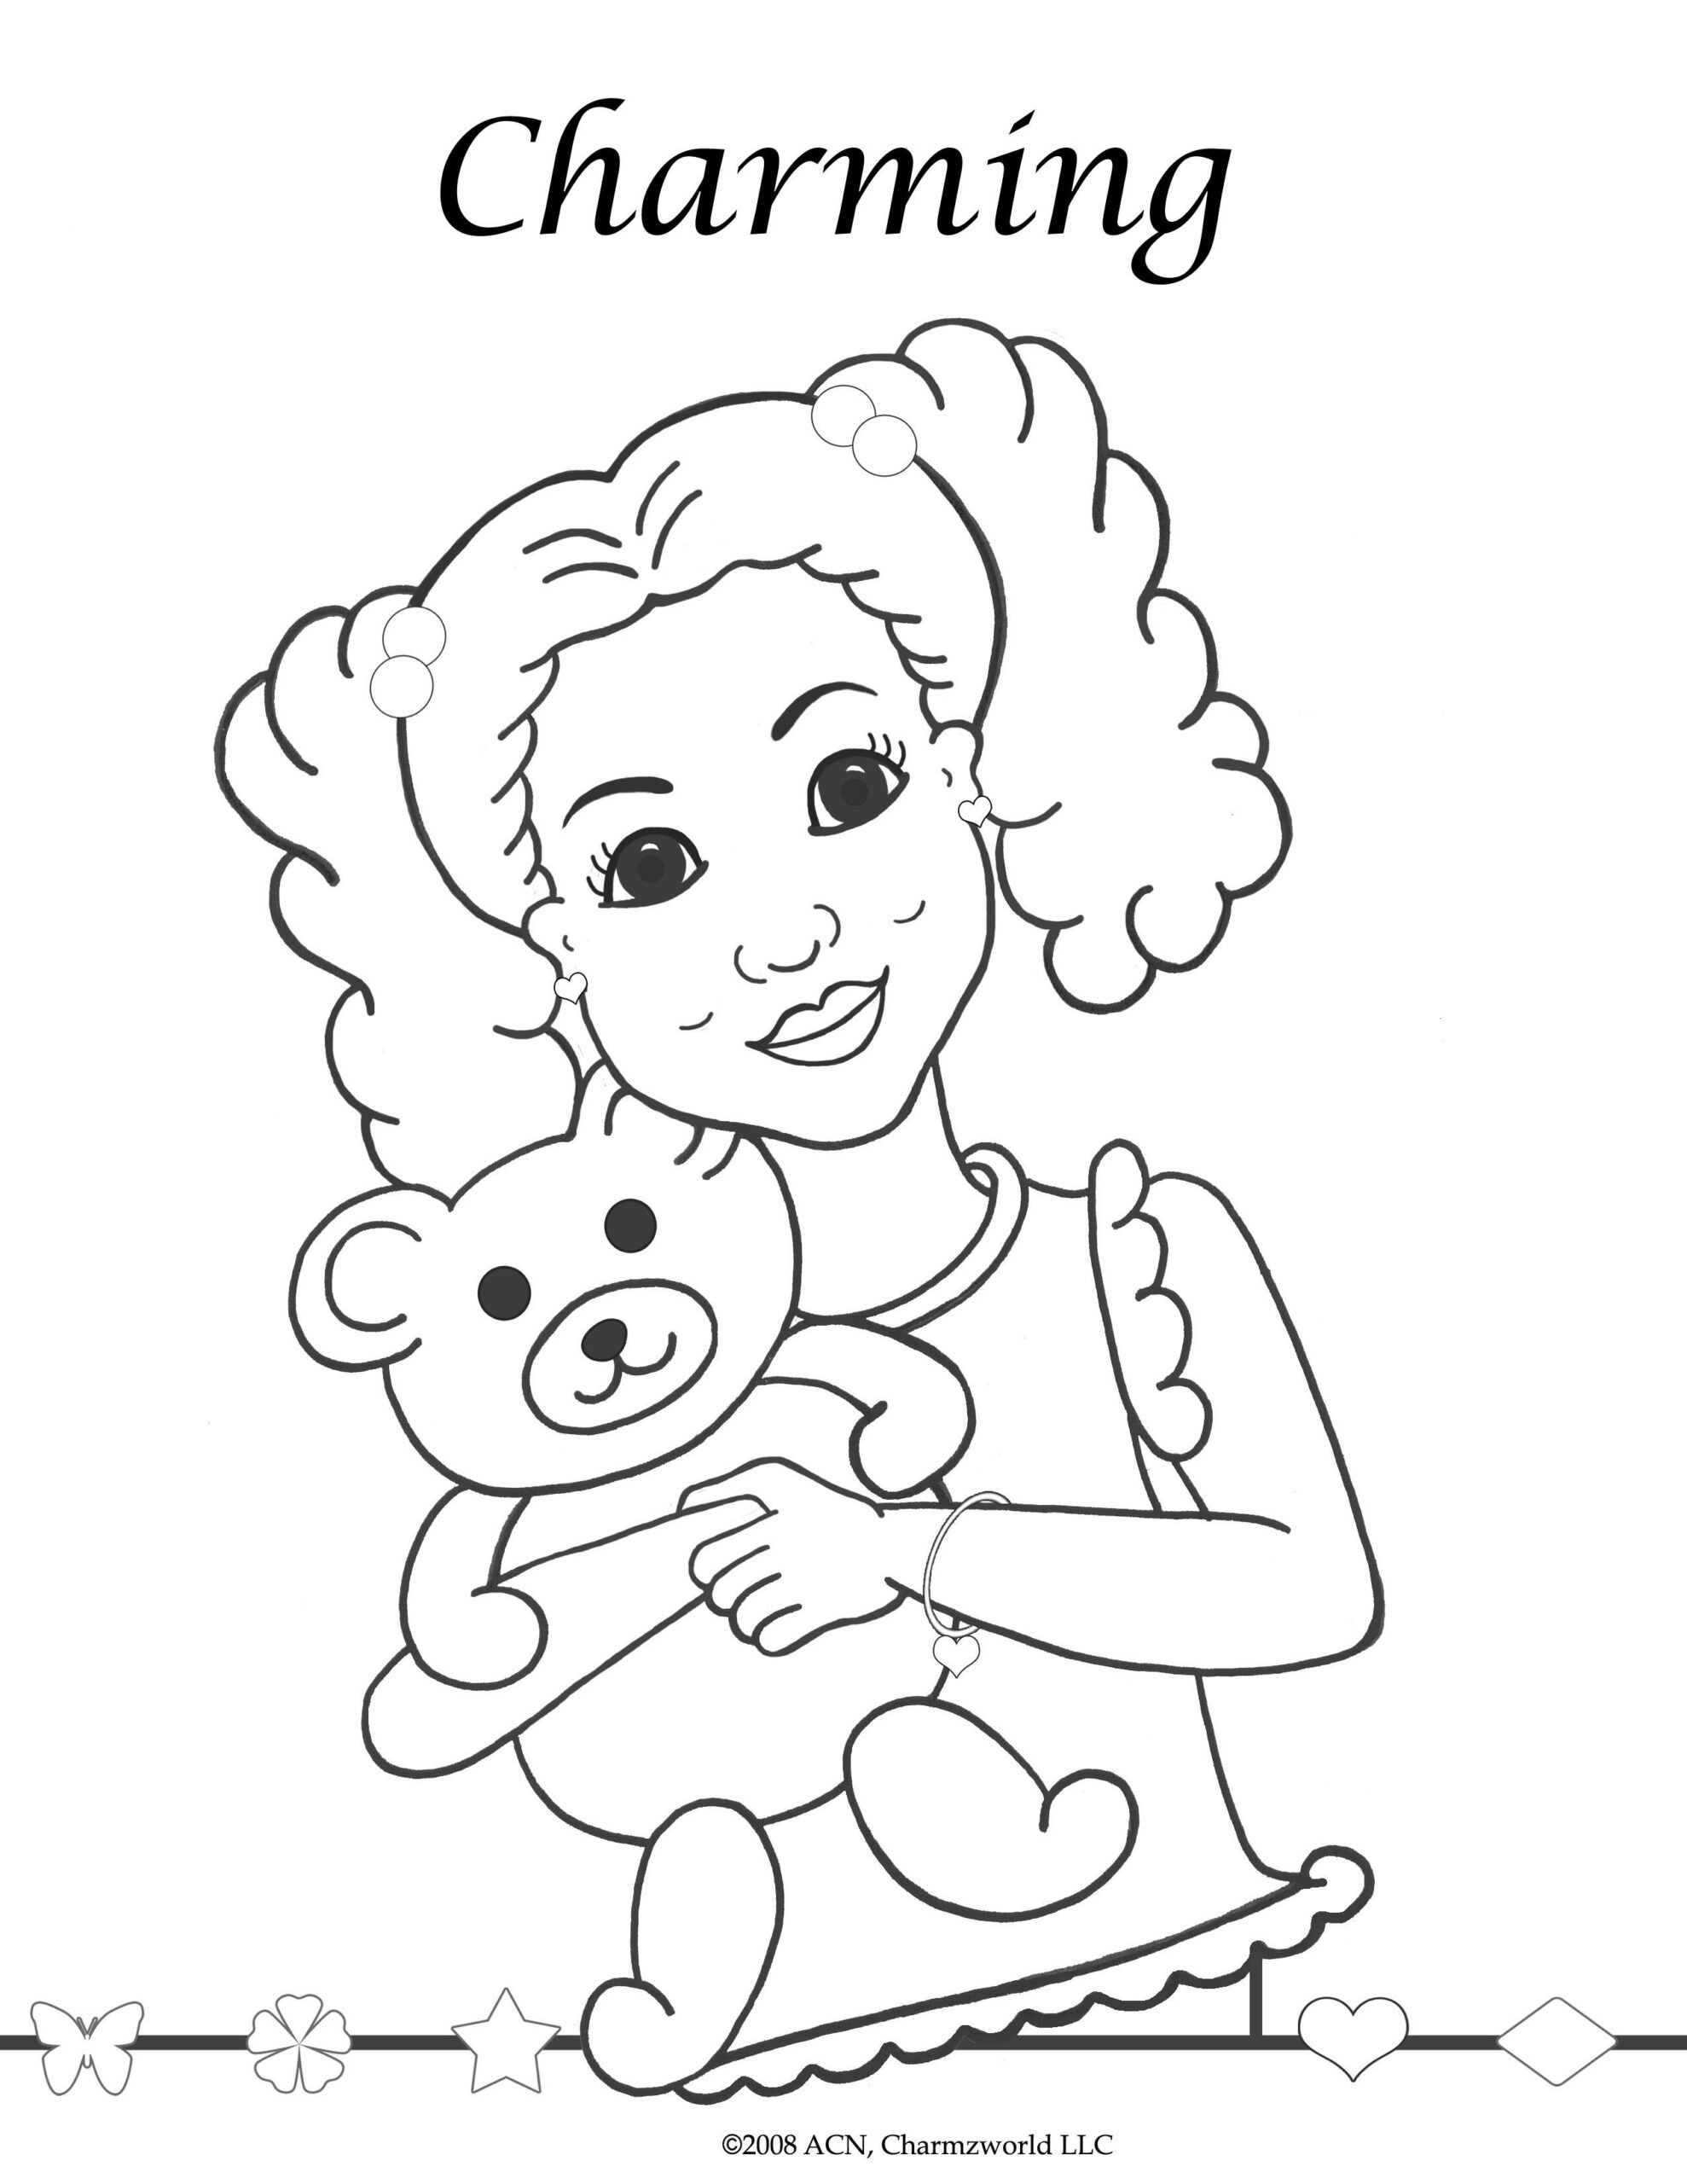 Coloring Pages : Charmz Girl Maya Coloring Books For Girls African 6th  Grade Math Algebra Ok Google Games Basic English Worksheets Digit Addition  3rd Homework Edm Spelling Kids Mathematics. African American Girl